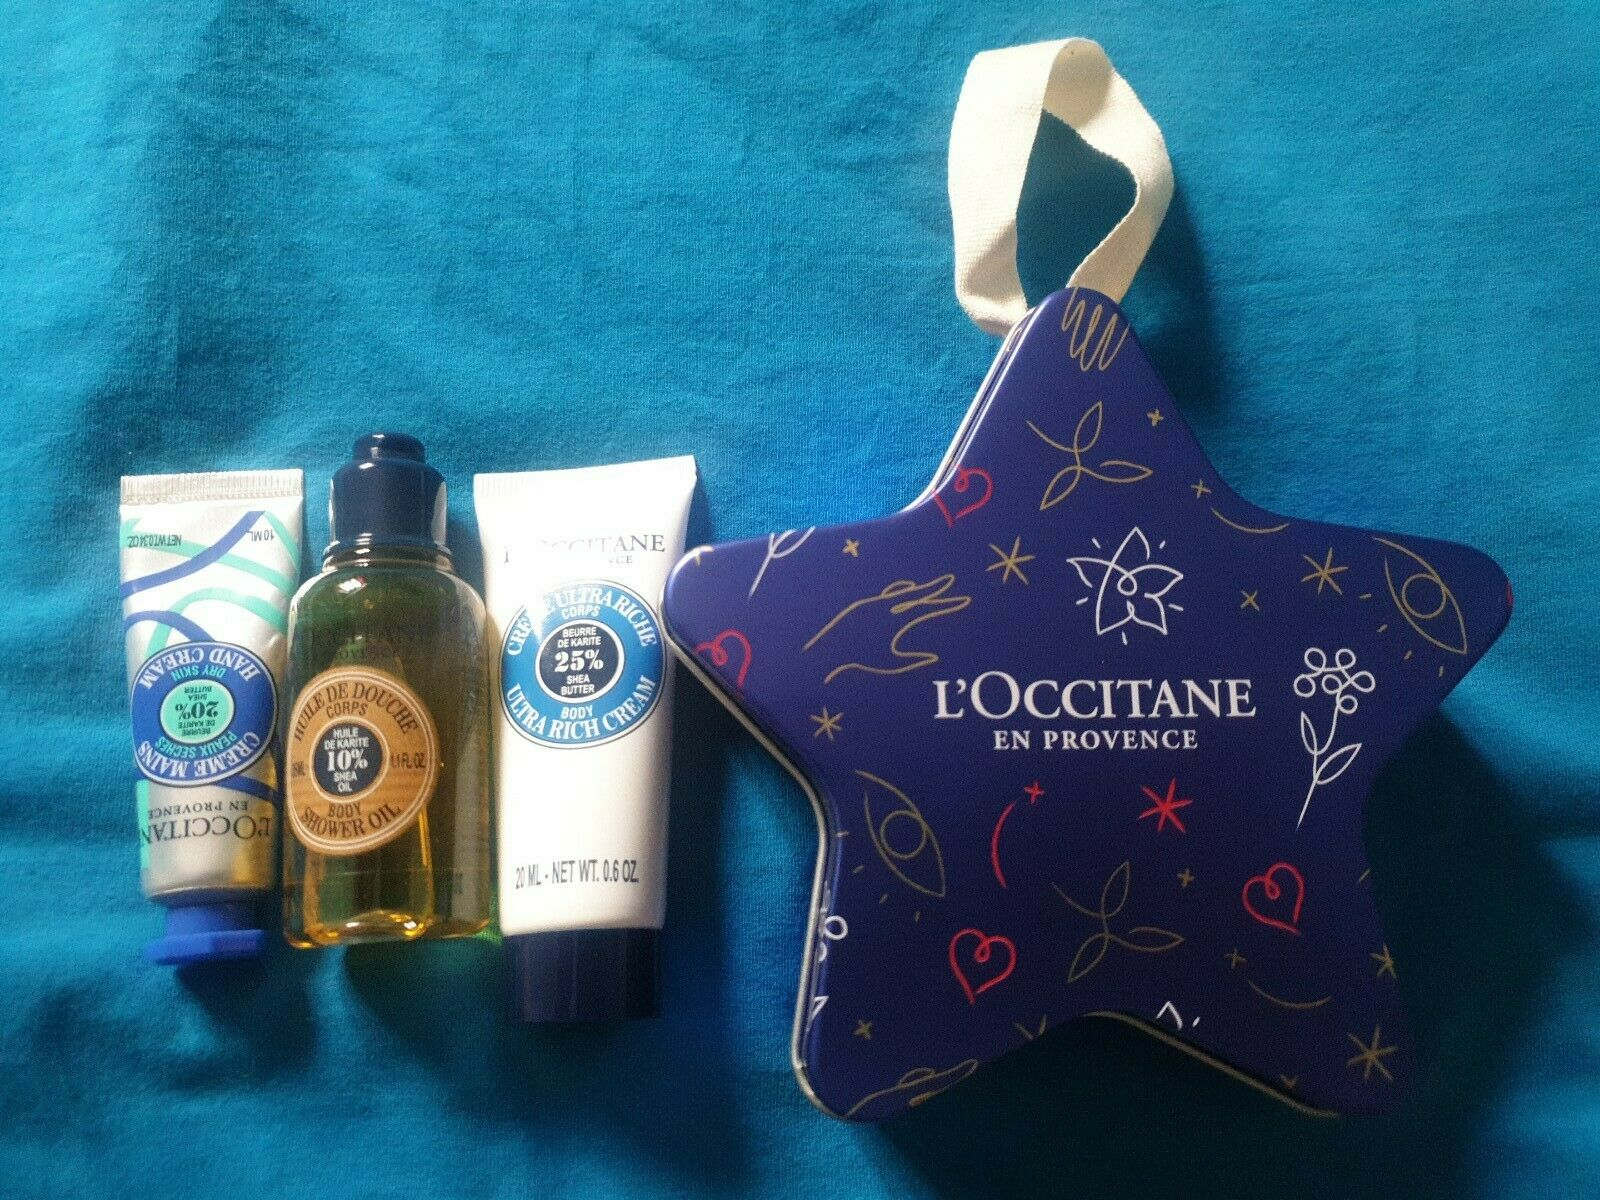 L'OCCITANE Blue Star Shaped Tin Christmas Tree Hanger Decoration with products